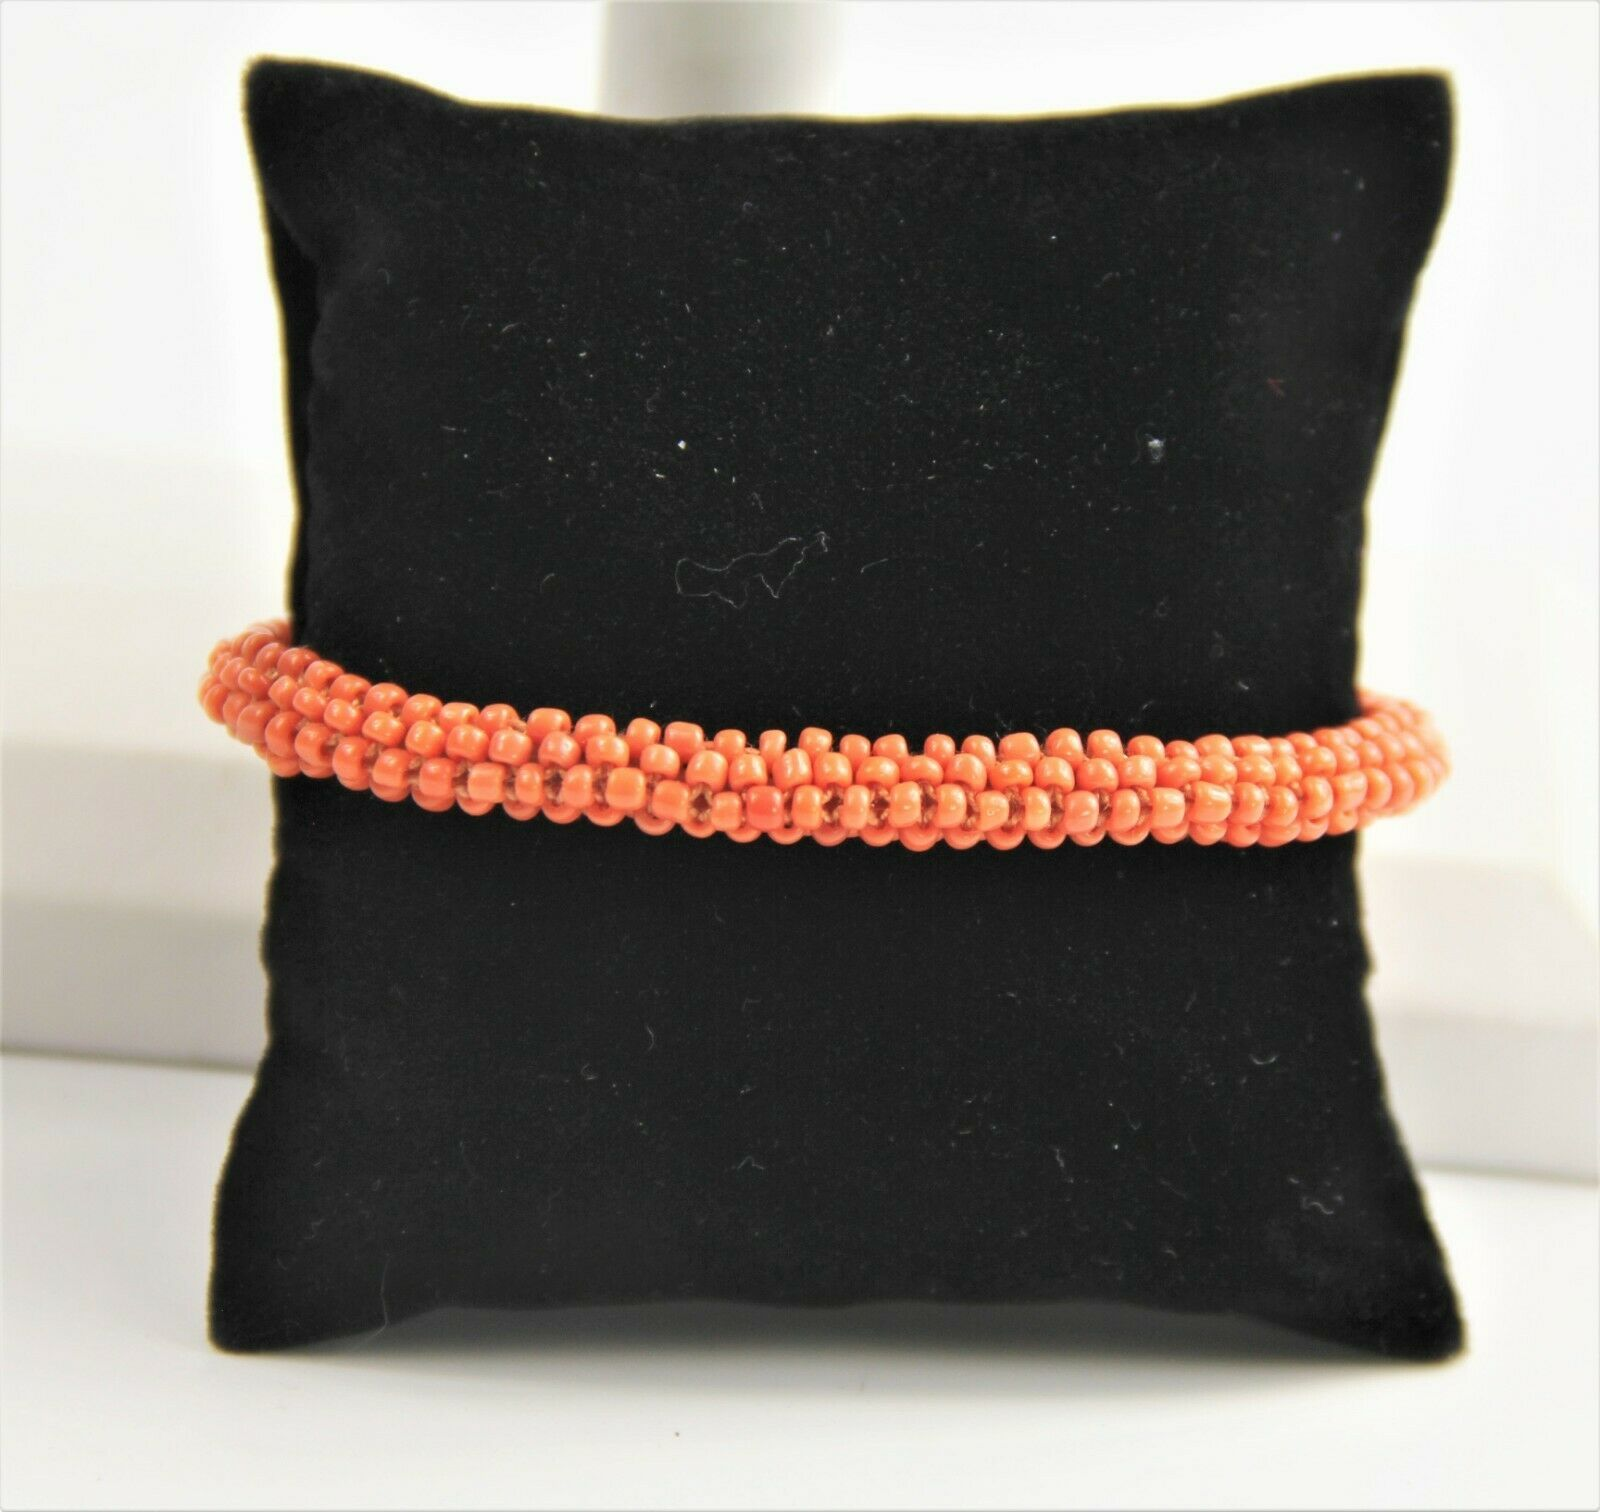 ANTIQUE ESTATE Jewelry VICTORIAN ERA WOVEN NATURAL CORAL BRACELET WITH APPRAISAL